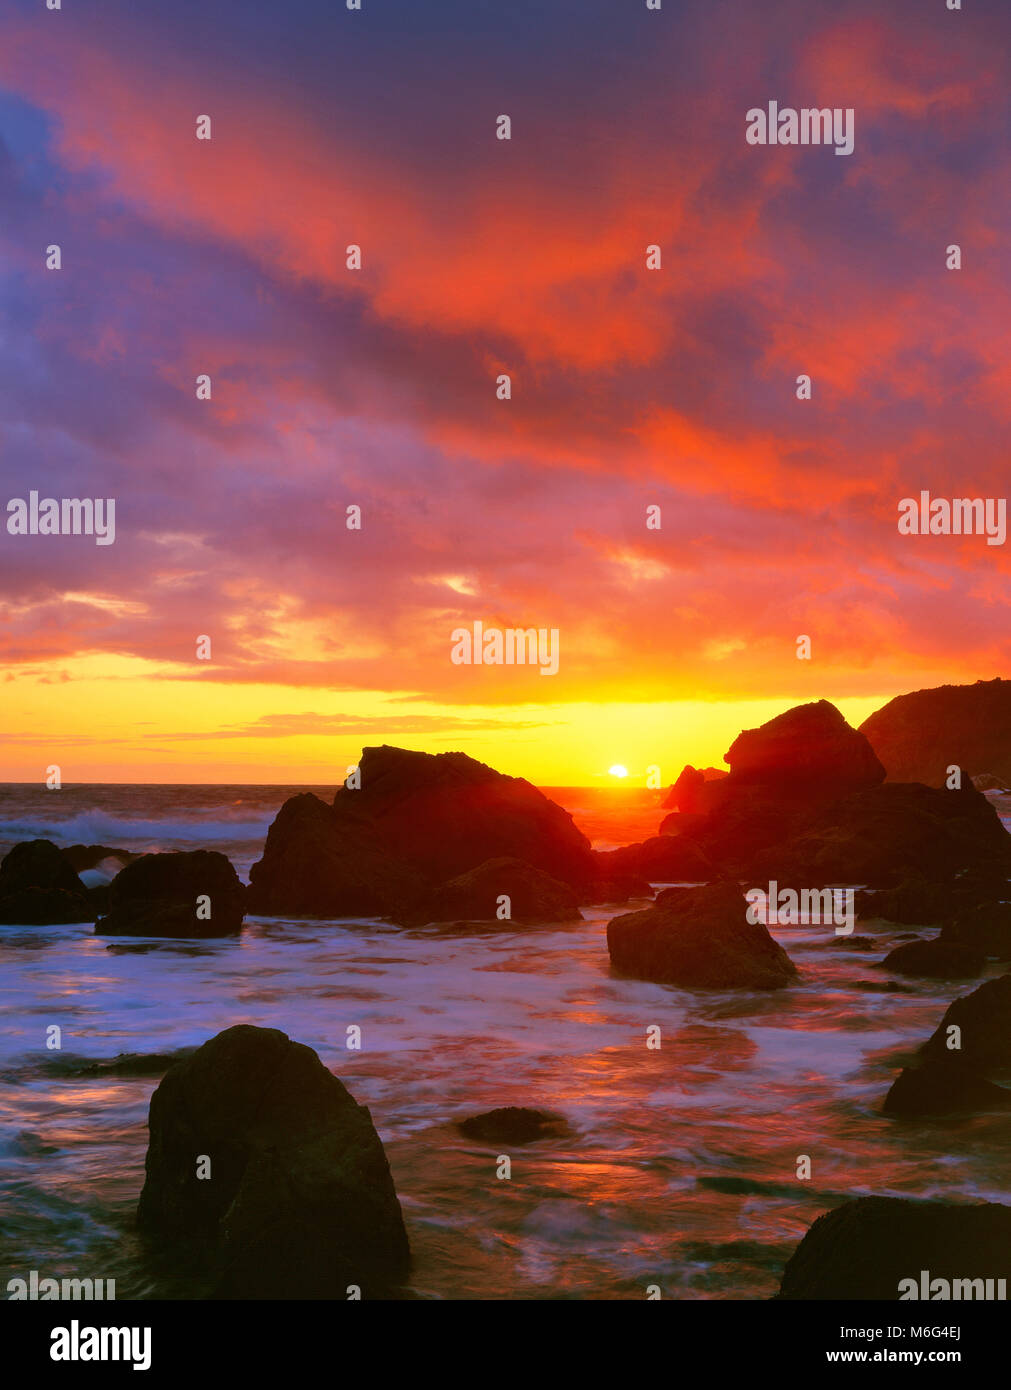 Sunset, Slide Beach, Golden Gate National Recreation Area, Marin County, California - Stock Image